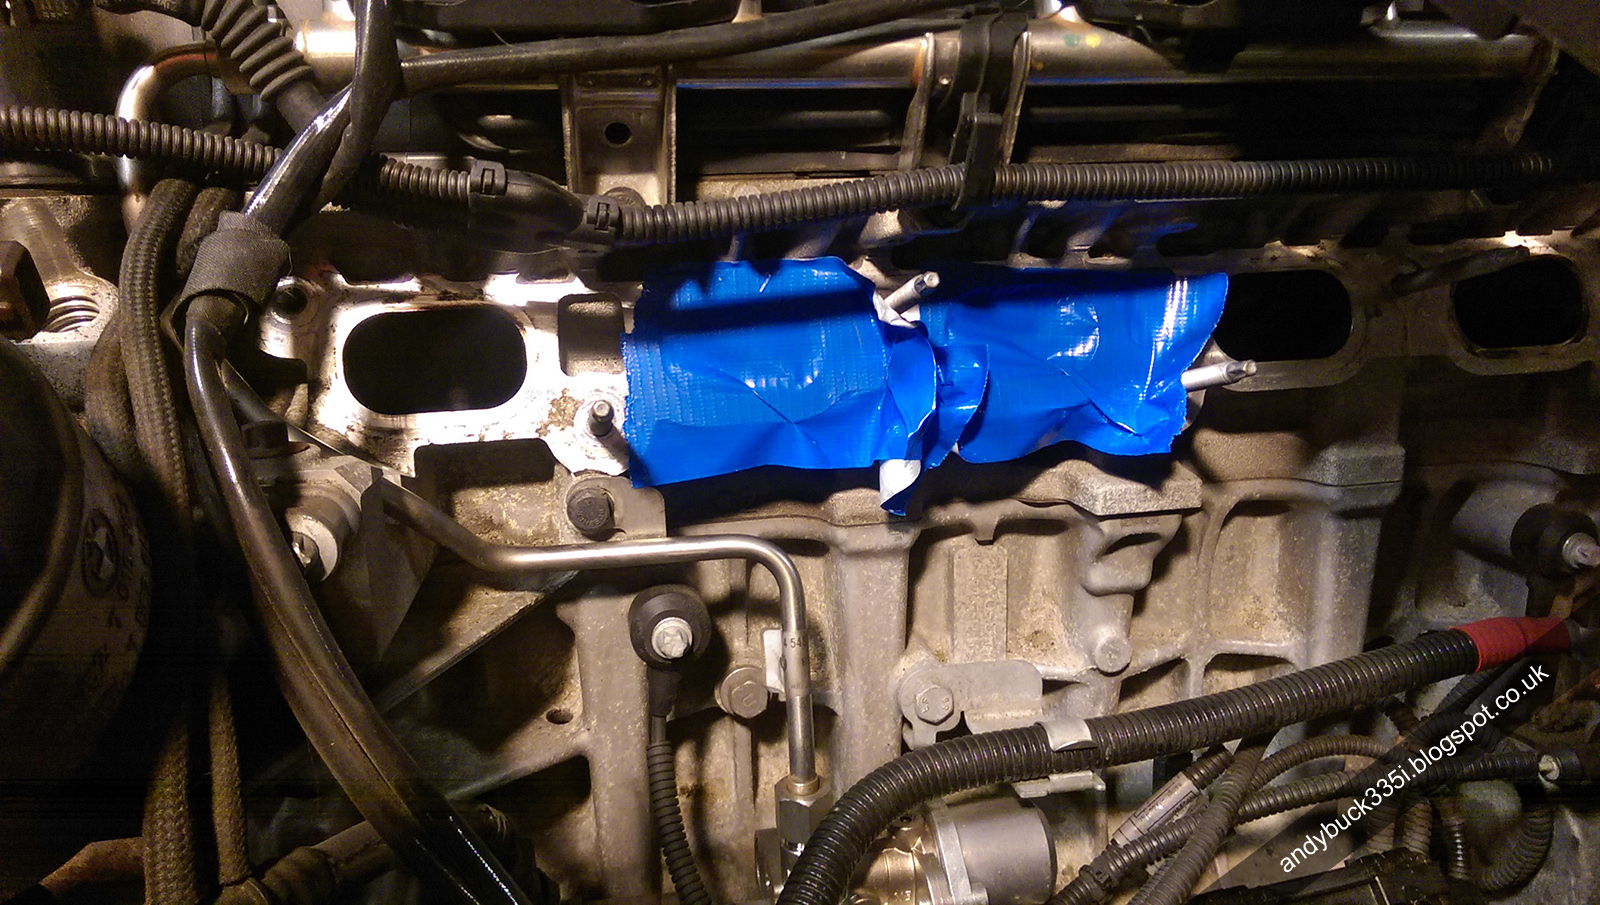 DIY Intake Valve Clean, New Spark Plugs and Rob Beck PCV